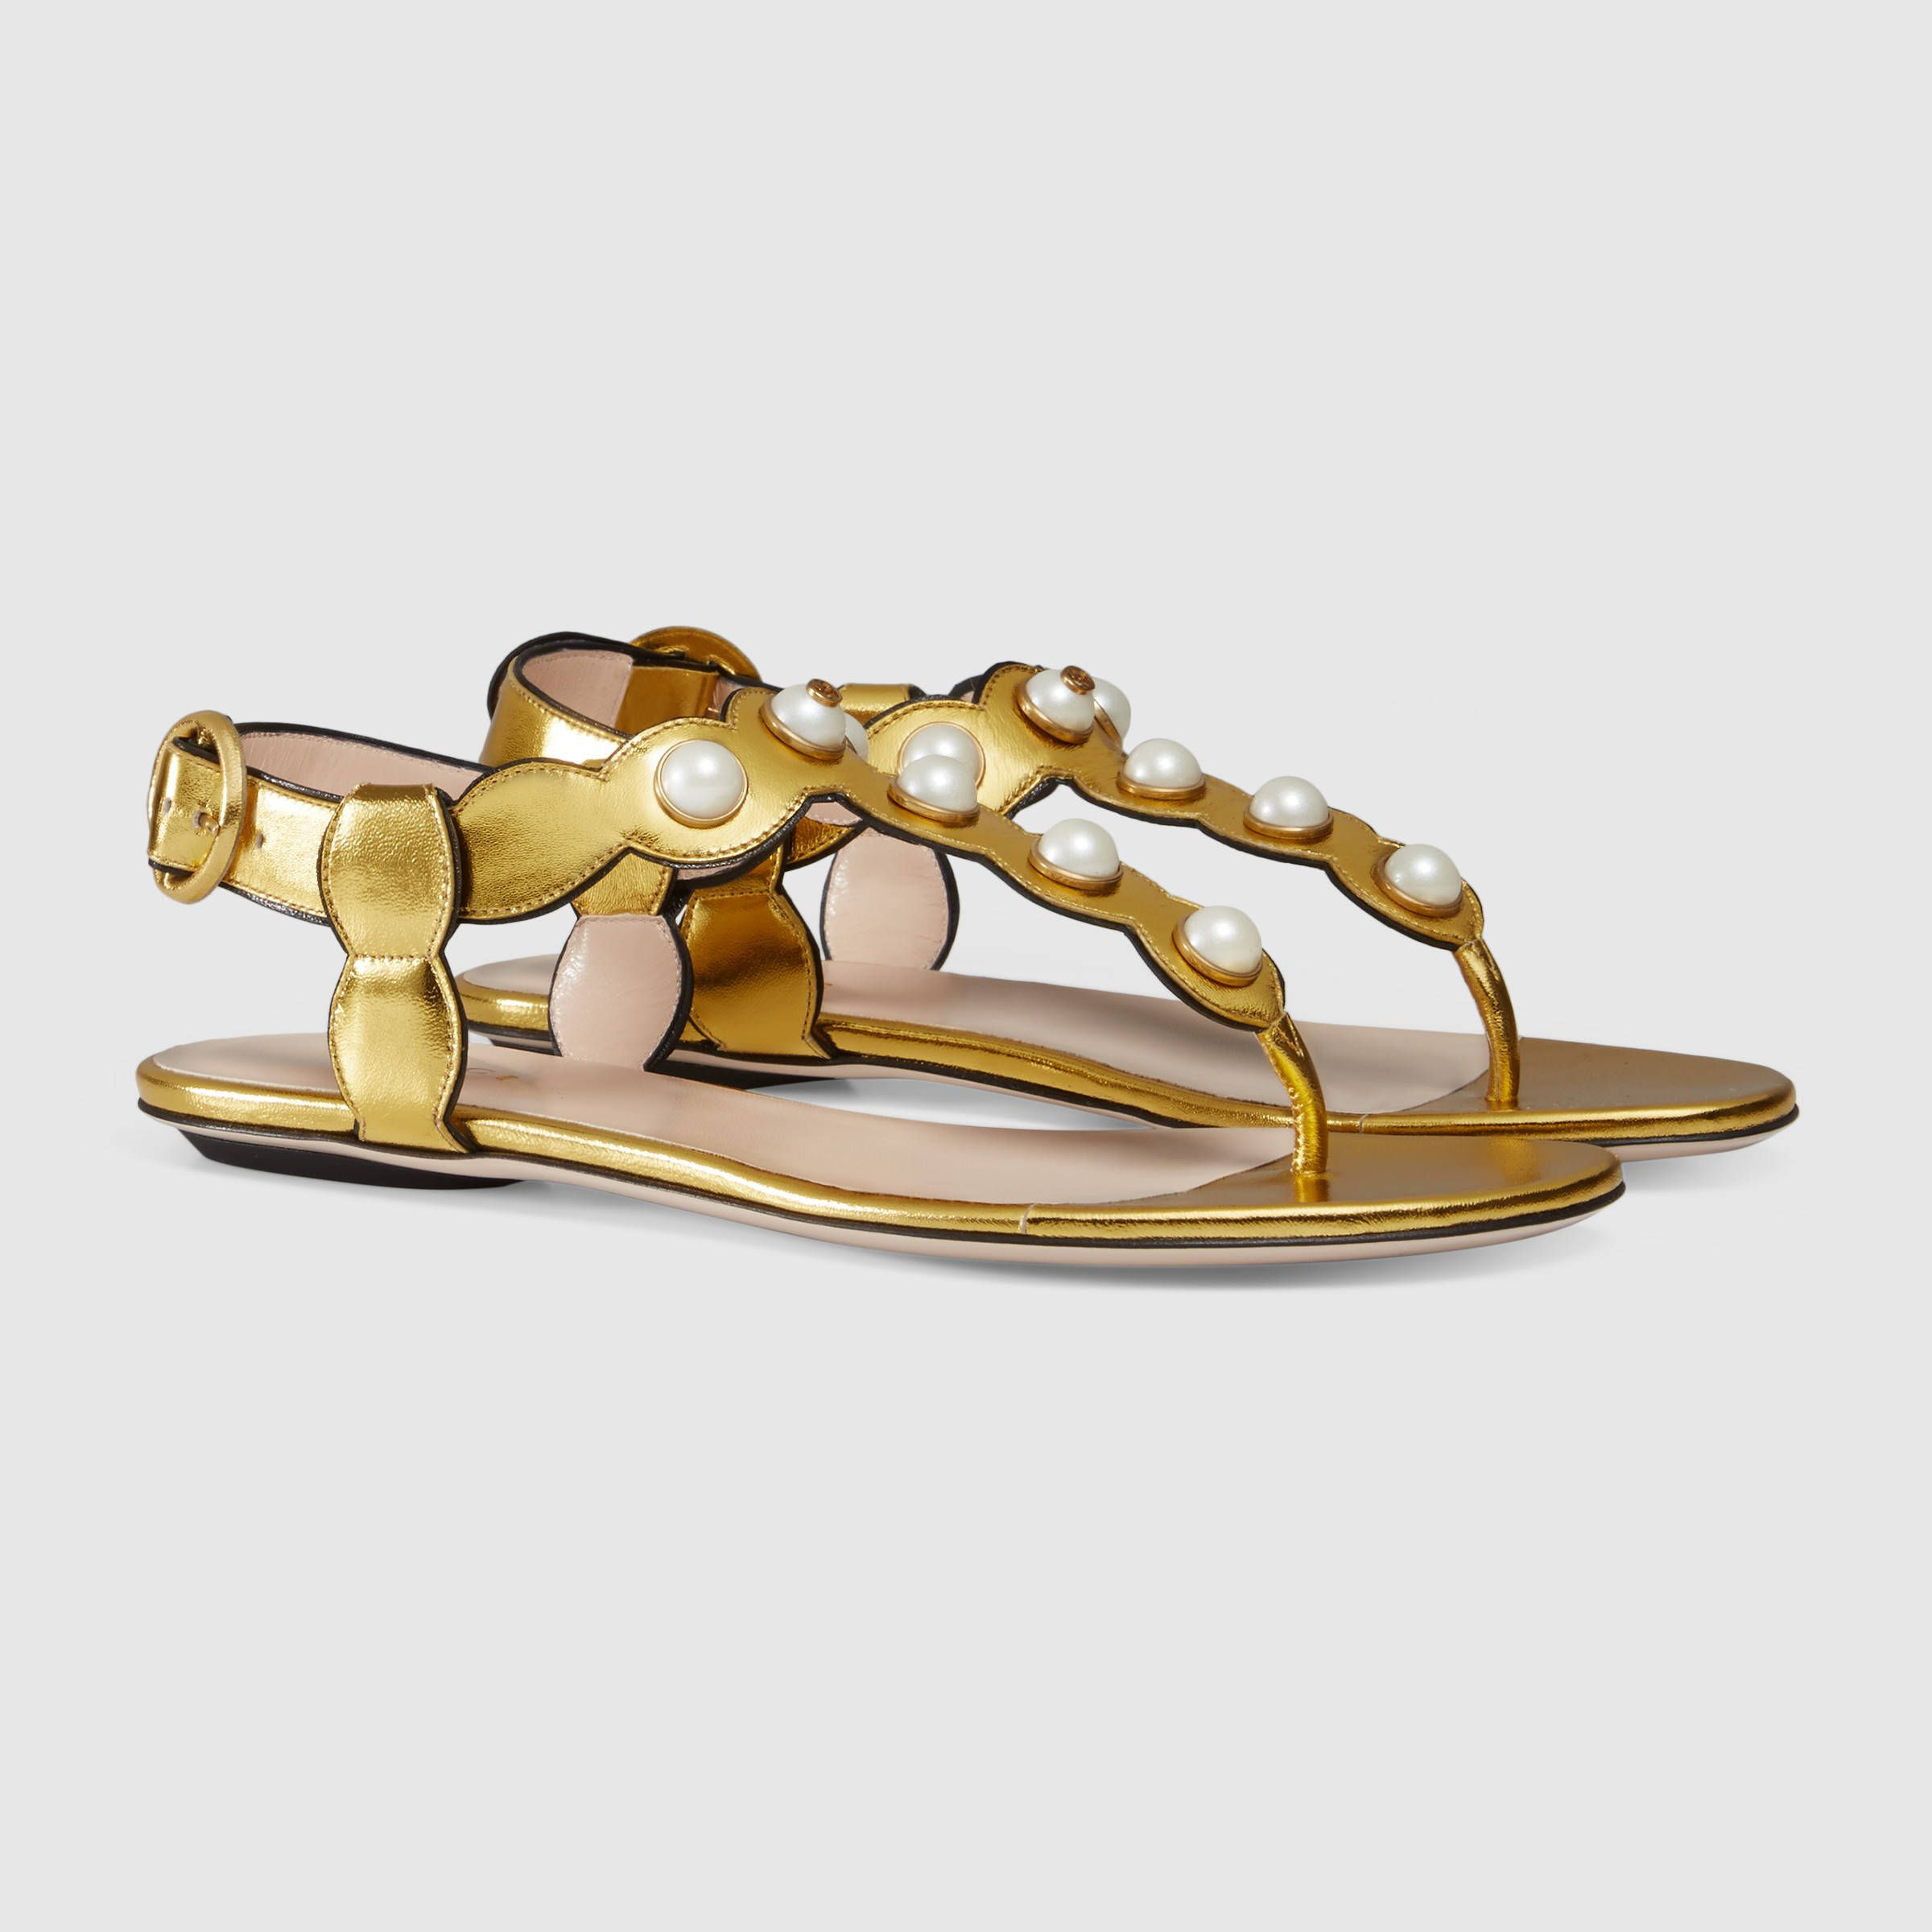 91917e1f3e93 Gucci Women - Gucci Willow Gold leather thong sandals -  695.00 ...